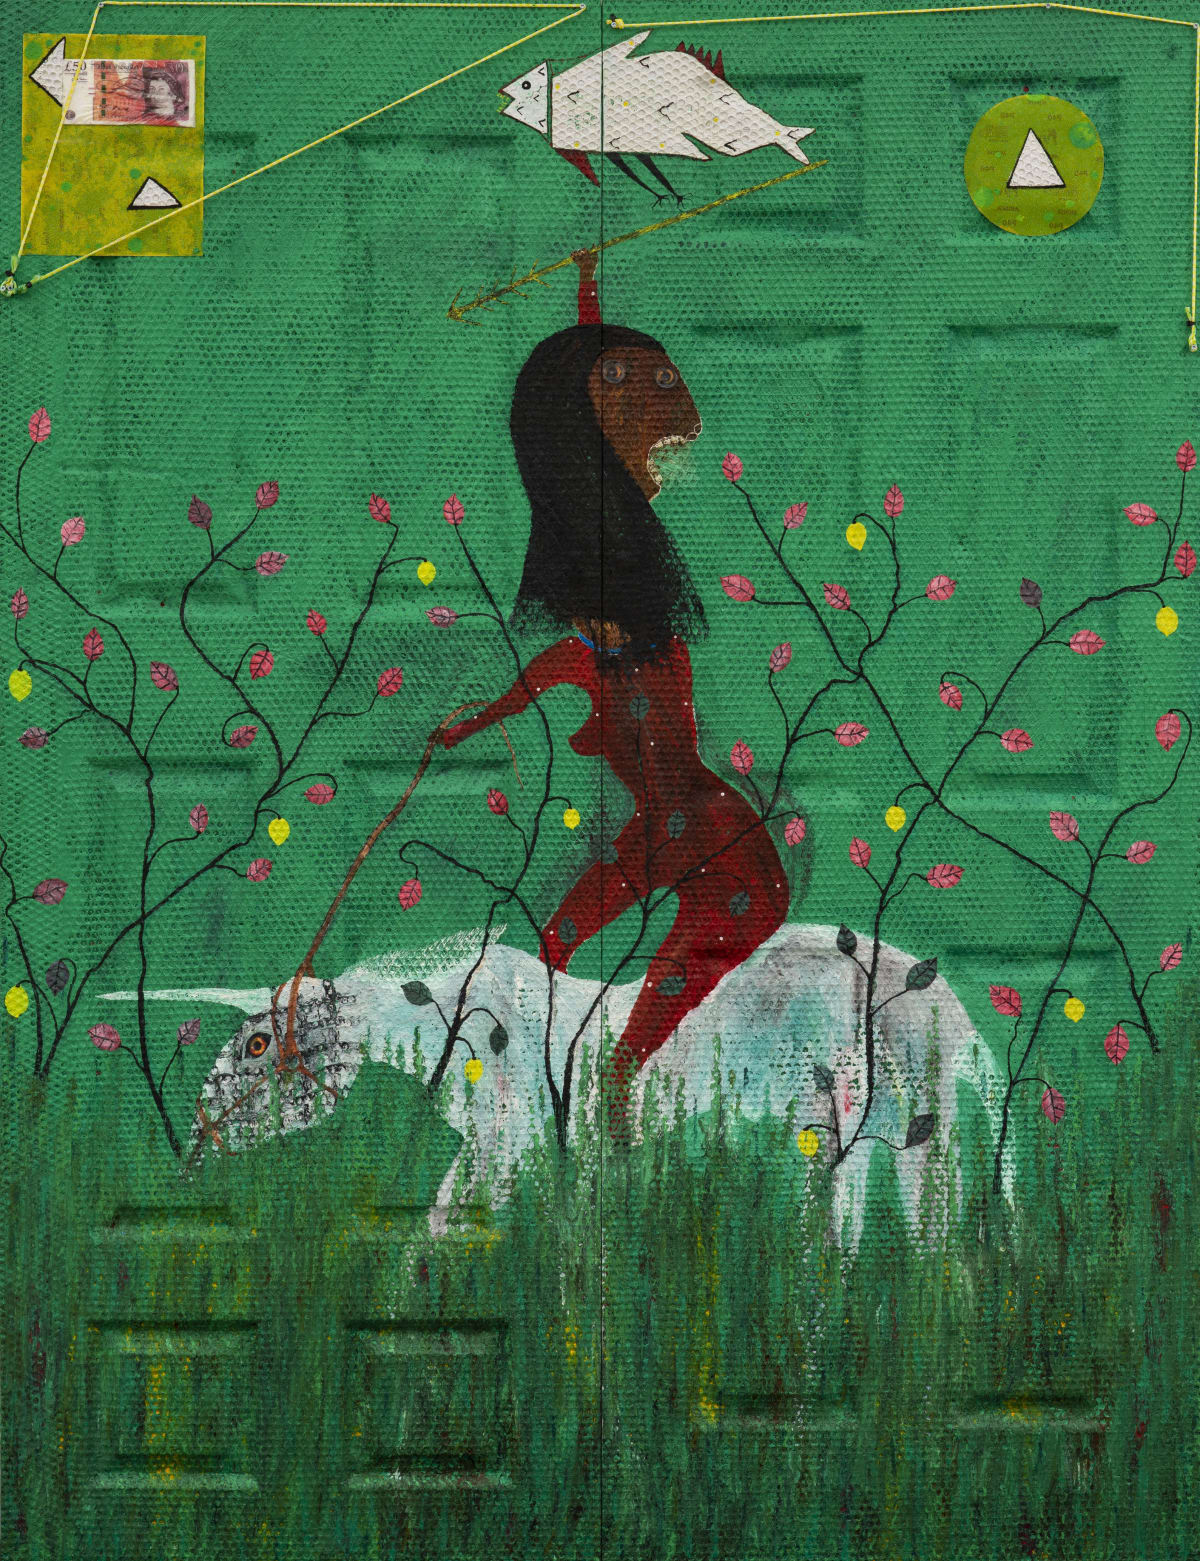 African art: young talents at Sotheby's and Bonhams exceed the estimates